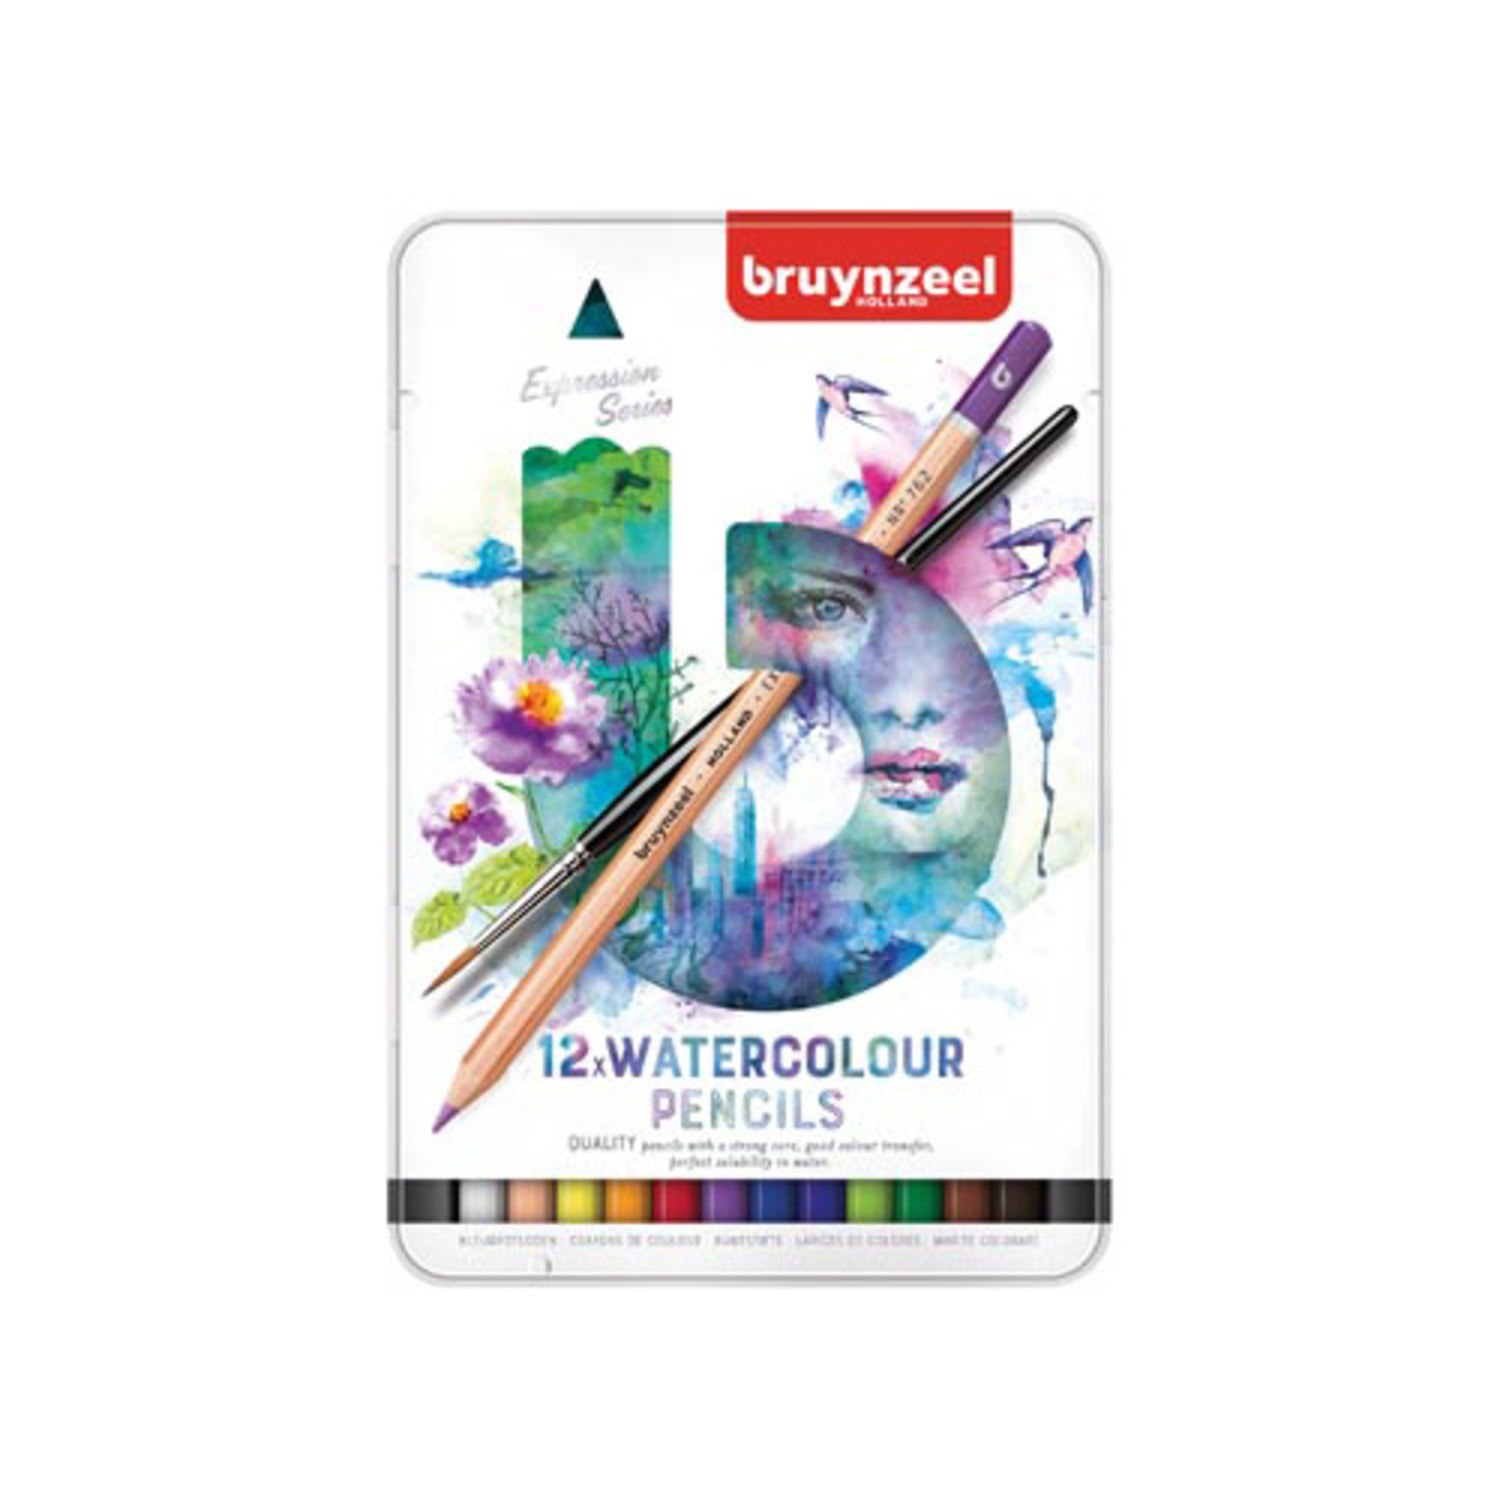 bruynzeel-bruynzeel-aquarel-potloden-expression-do_big_image